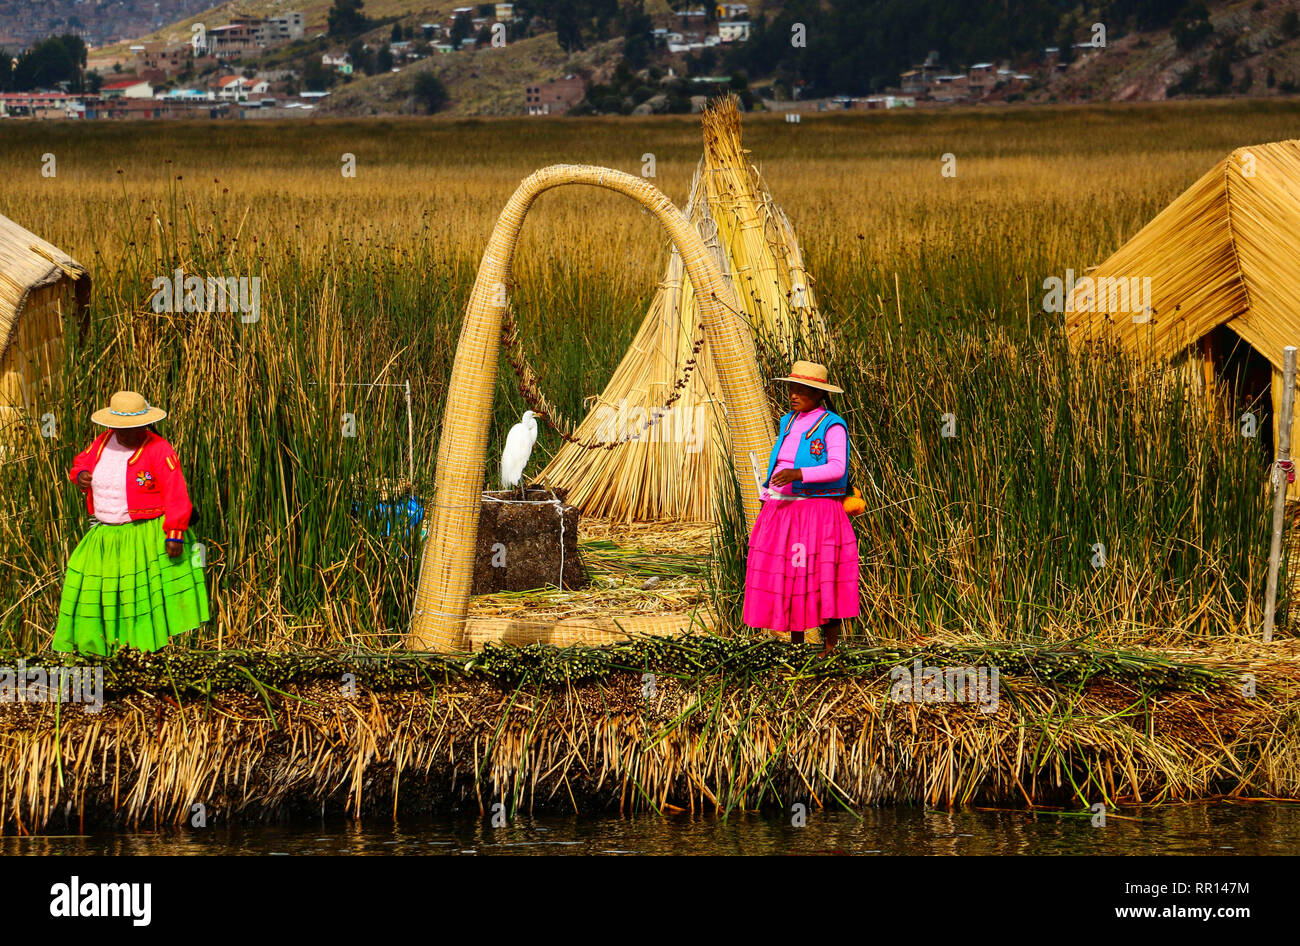 PUNO, PERU - NOVEMBER 11, 2015: Women in traditional attires on Uros Islands, lake Titicaca, Peru - Stock Image